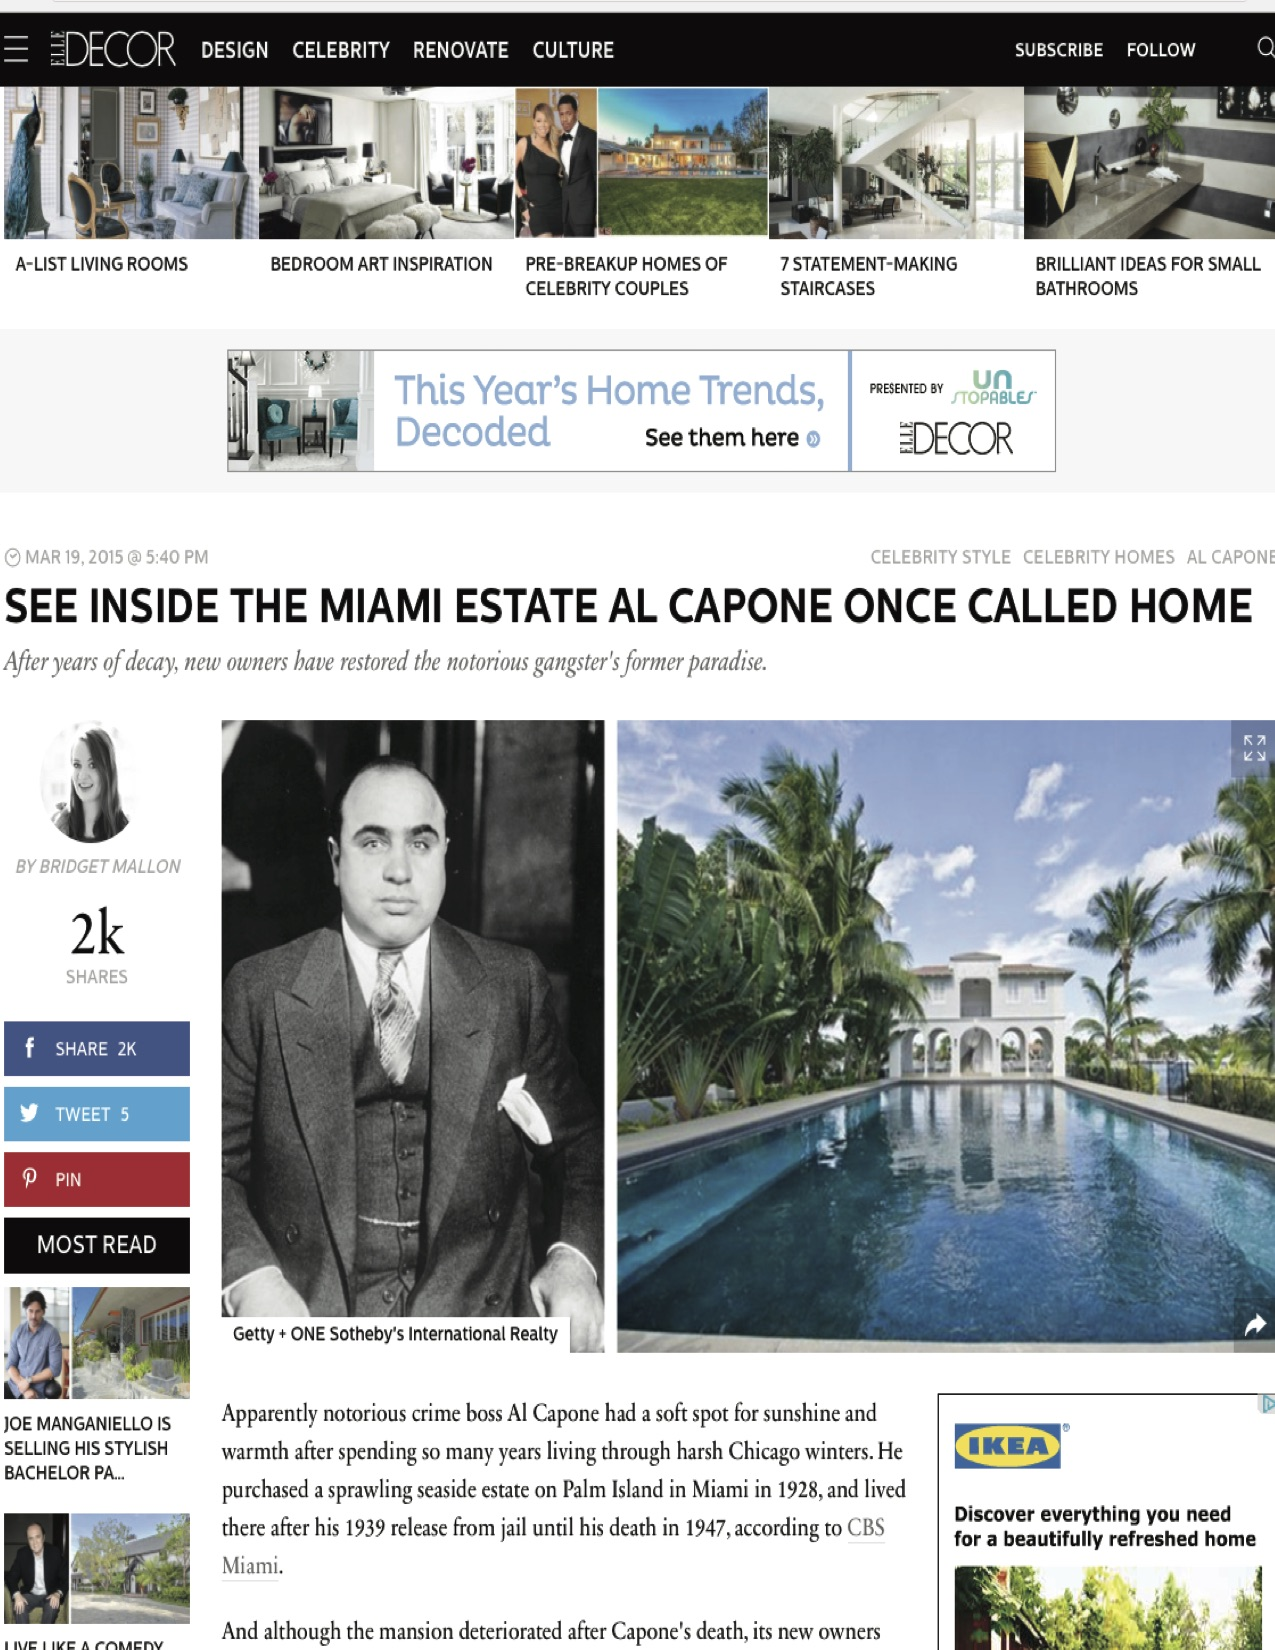 """<p><strong>Elle Decor</strong><a href=""""http://www.elledecor.com/celebrity-style/celebrity-homes/a7245/see-inside-al-capones-miami-estate/"""" target=""""_blank"""">View Article →</a></p>"""